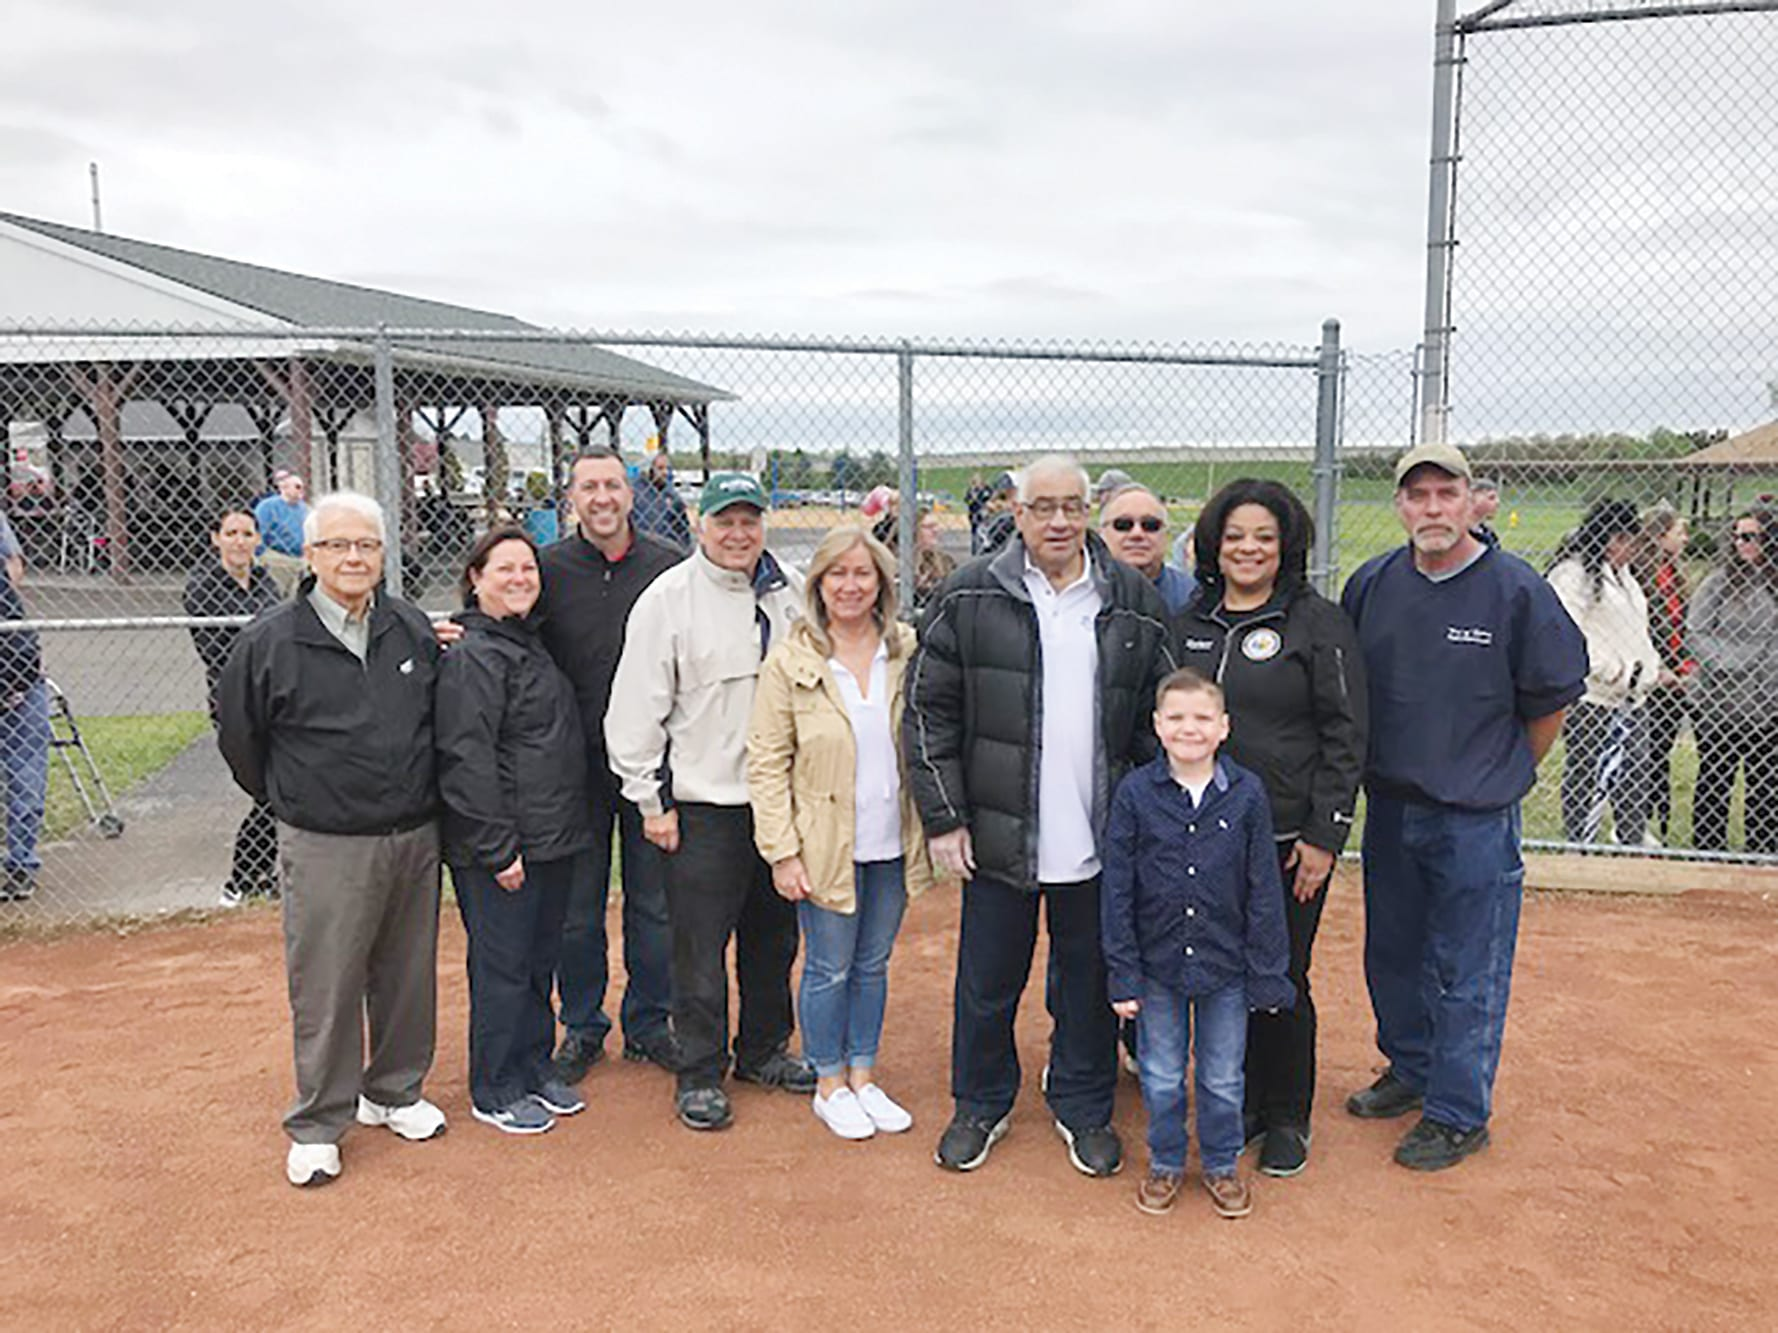 Del Vecchio honored for Little League volunteerism